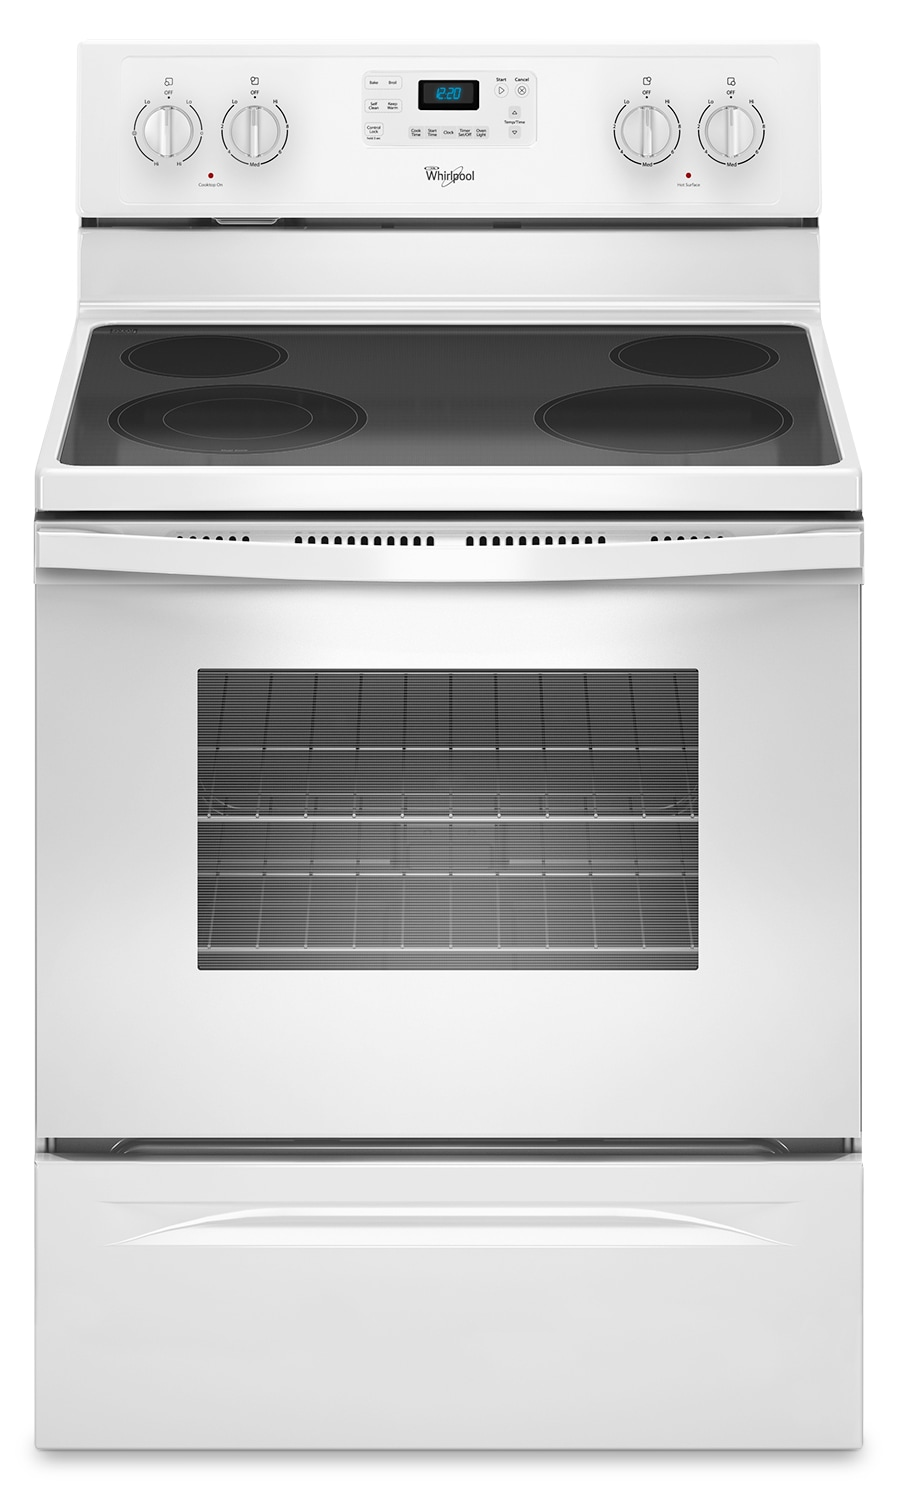 Cooking Products - Whirlpool 5.3 Cu. Ft. Freestanding Electric Range – YWFE515S0EW